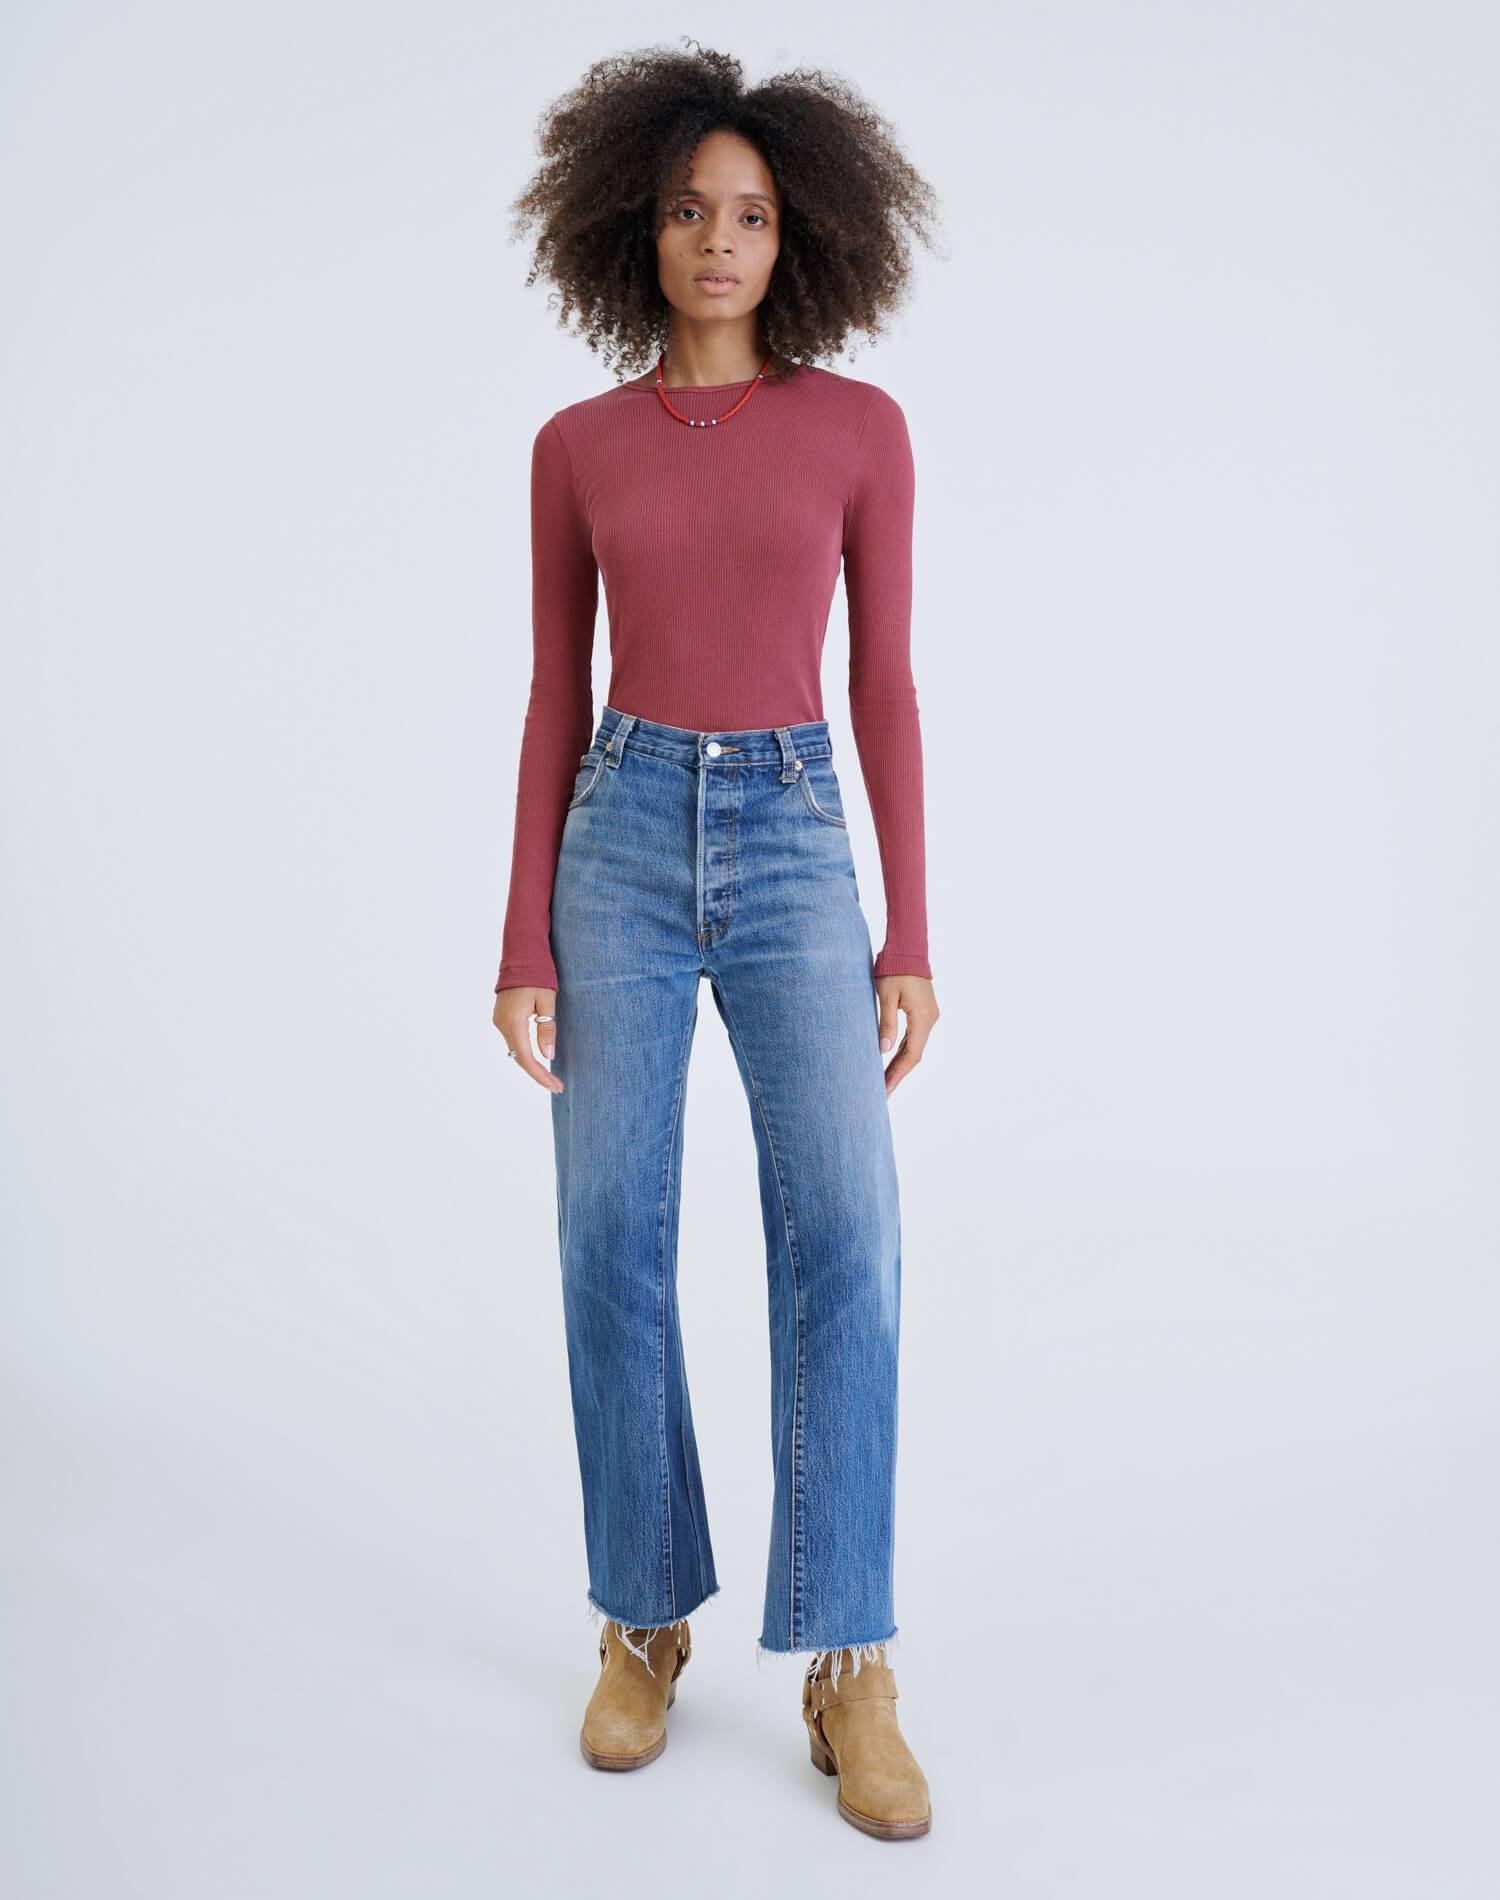 60s Ribbed Long Sleeve Bodysuit - Natural Berry 2